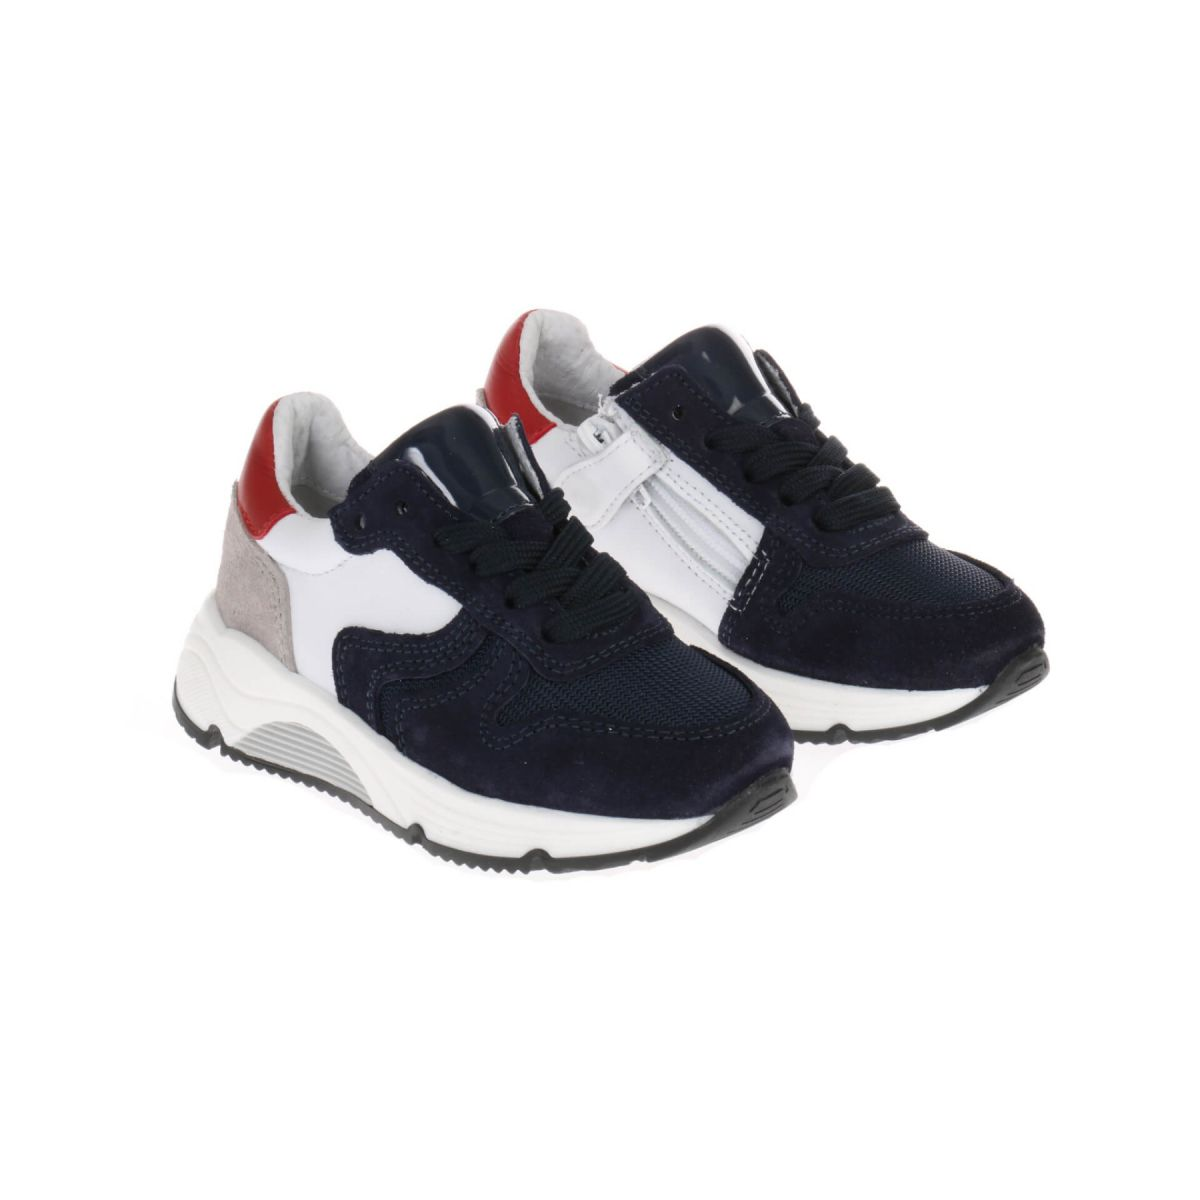 HIP H1343 Sneakers Blauw Wit Rood